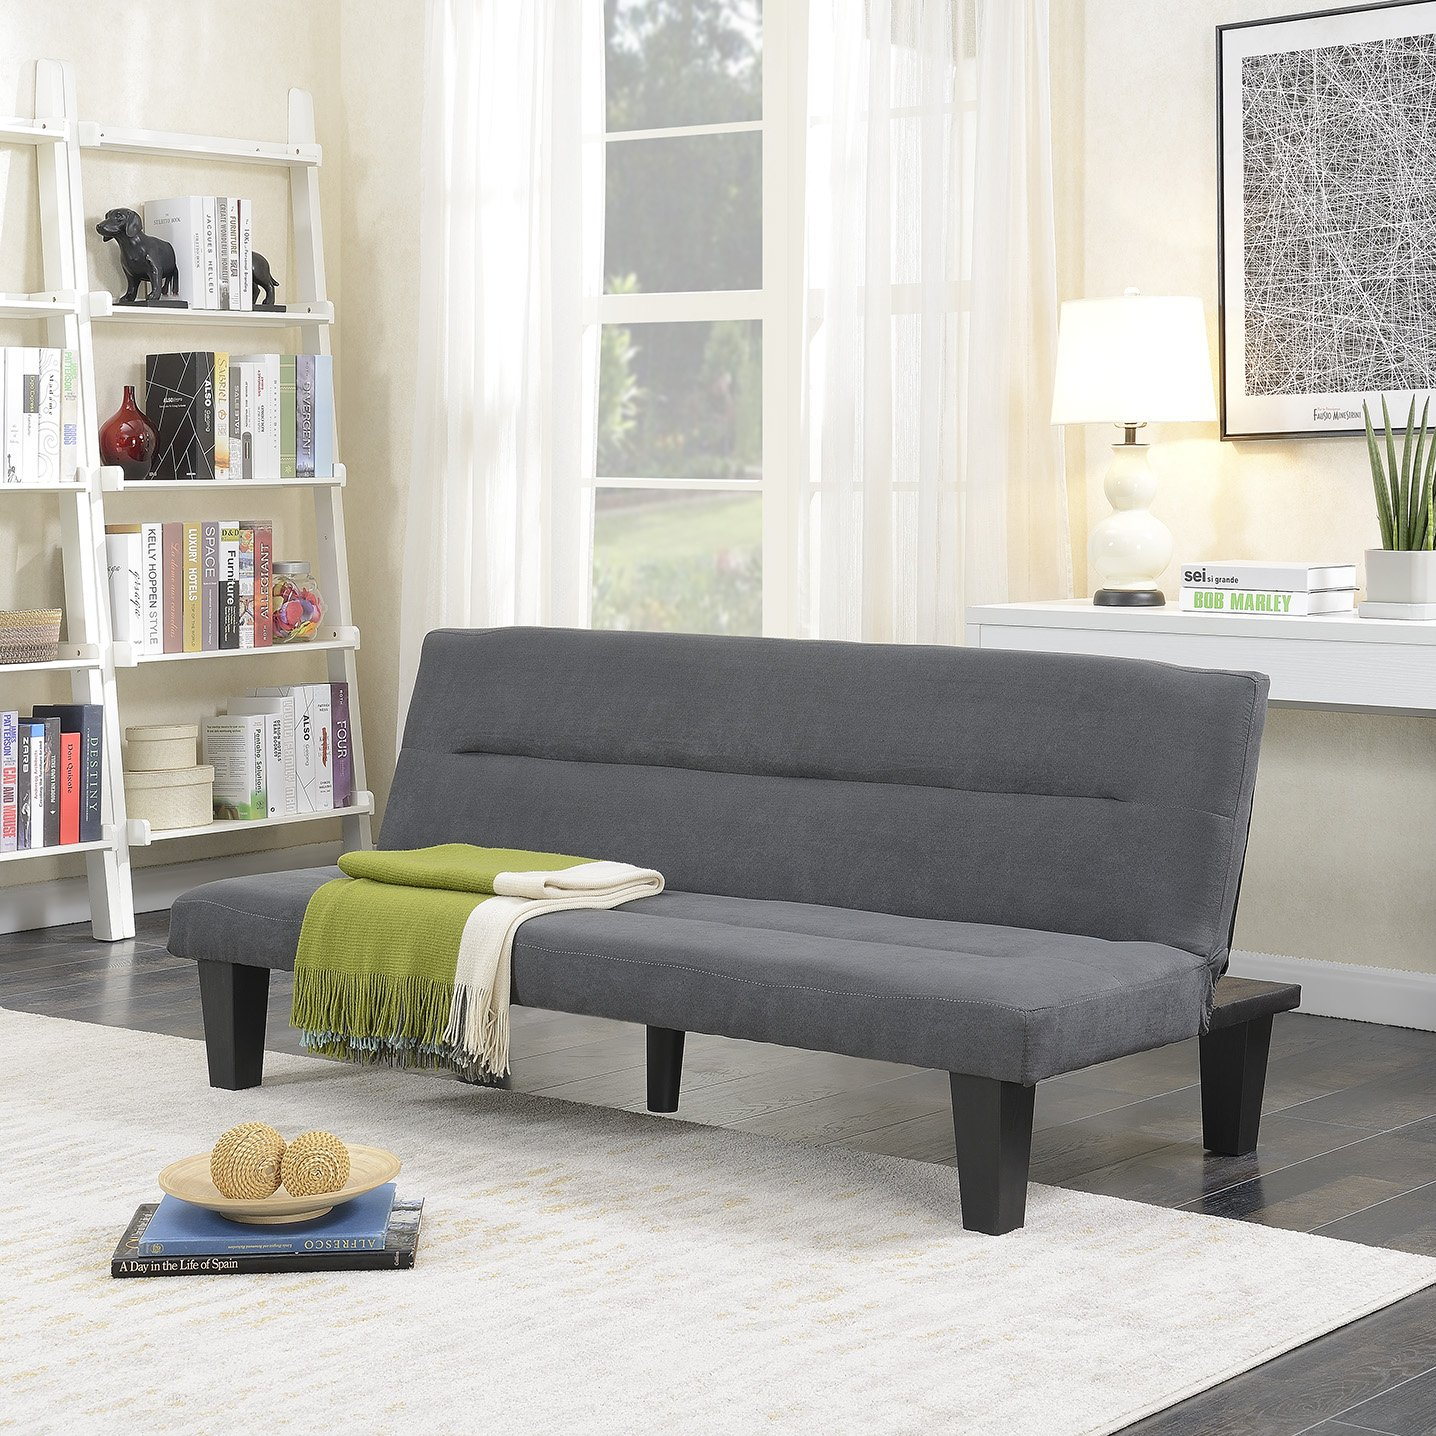 Belleze Futon Sofa Bed Furniture Sleeper Adjustable Lounger Convertible Comfort Low Seat Microfiber w/Wooden Legs, Gray by Belleze